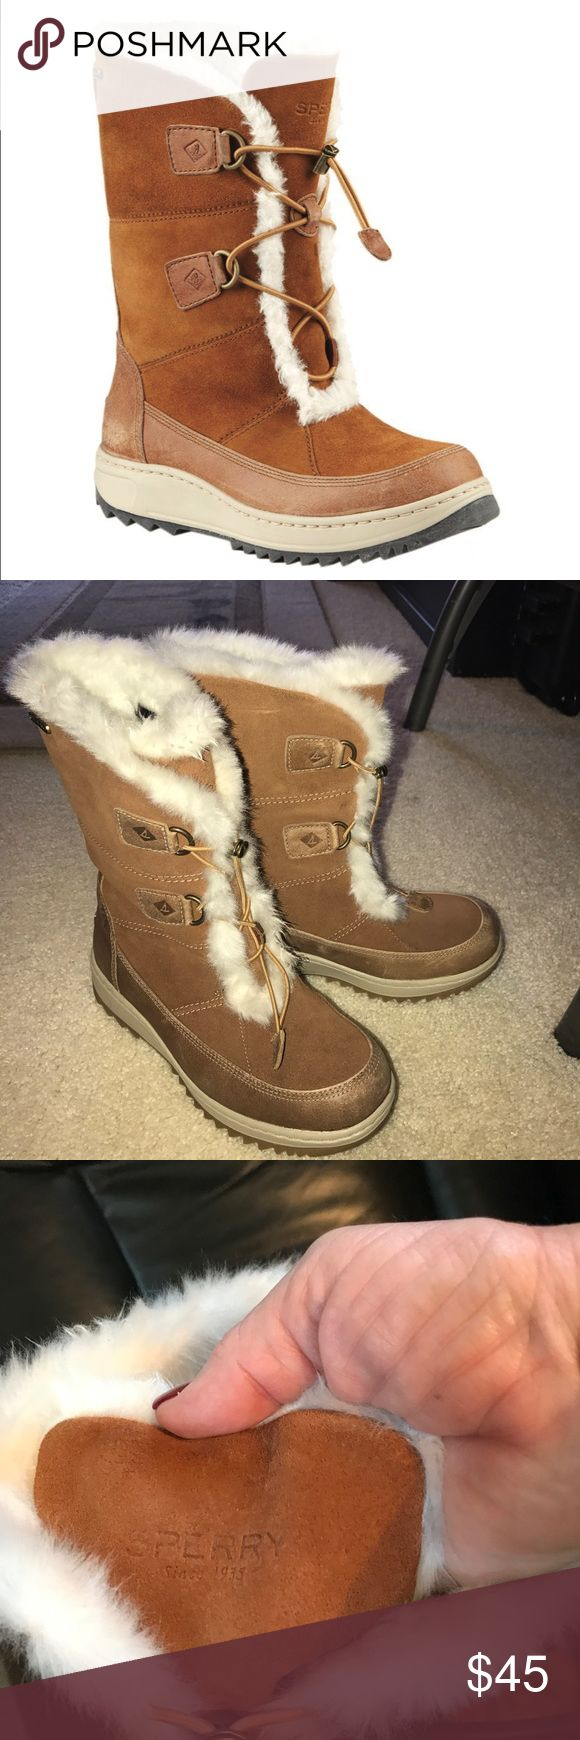 Sperry Winter Boots Sperry Top-Sider - Powder Valley Polar Ice Grip with Thinsulate Boot - Women's - worn just a couple of times. Like new! Super warm and cozy! Sperry Top-Sider Shoes Winter & Rain Boots